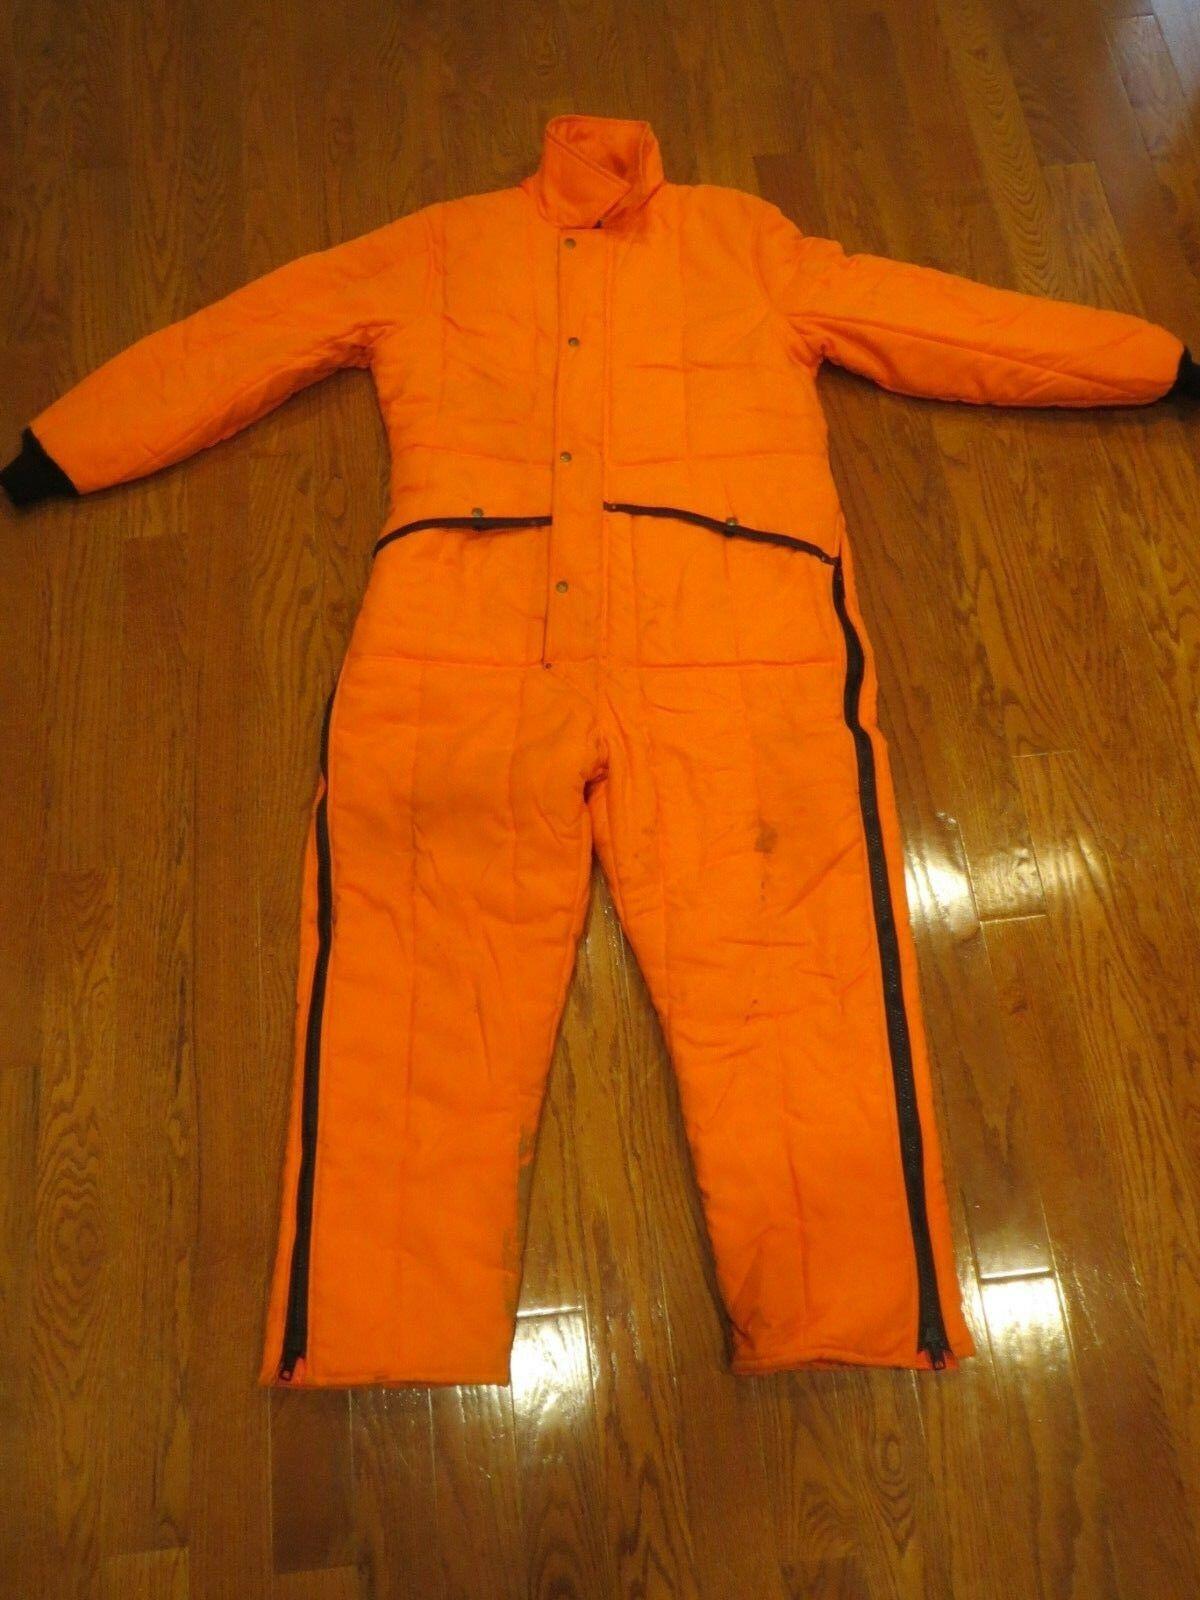 RefrigiWear Men's XL Extra Large Insulated orange Hunting Outfit One Piece